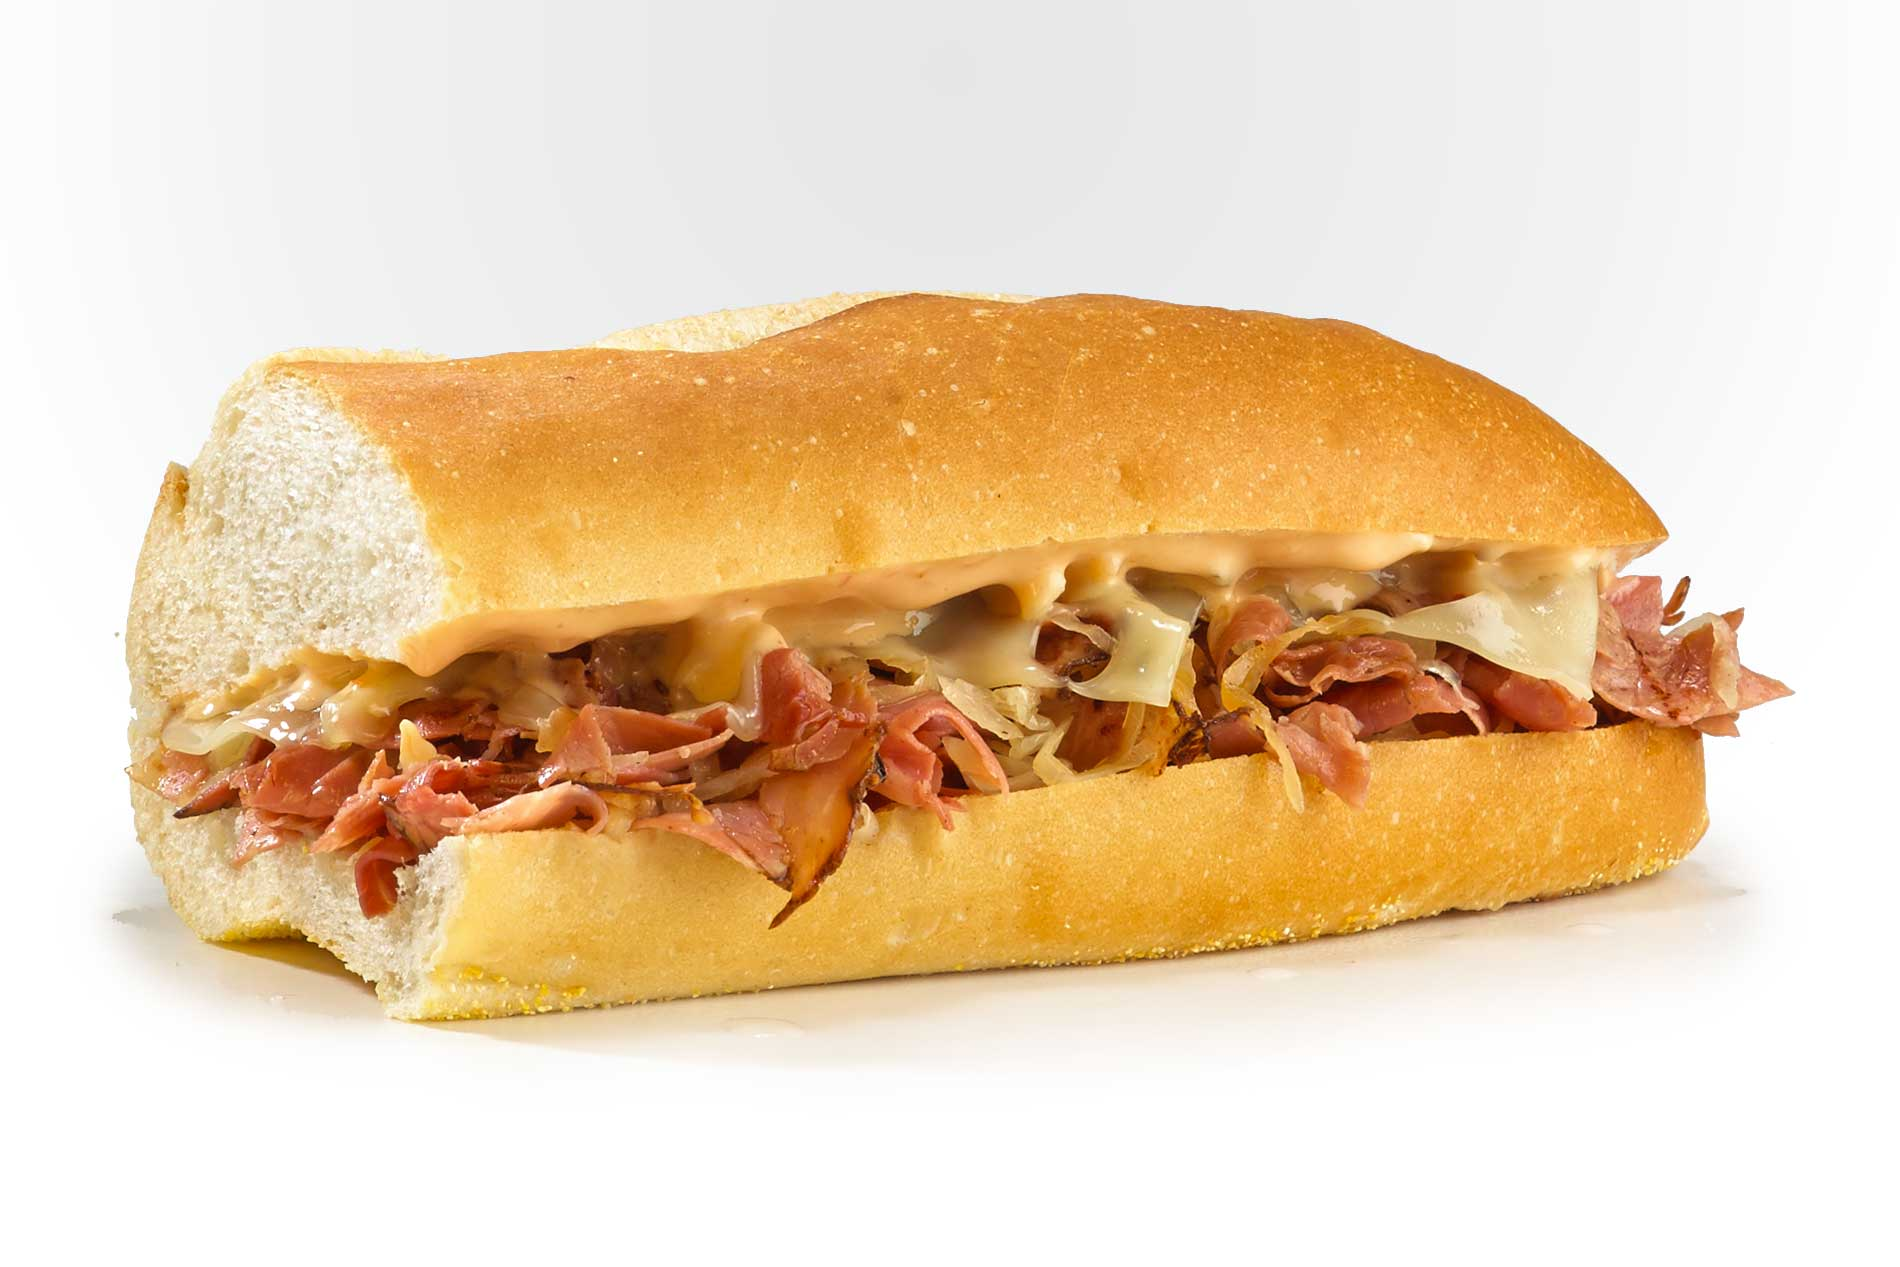 dfd243706645 20 Grilled Pastrami Reuben - Hot Subs - Jersey Mike s Subs